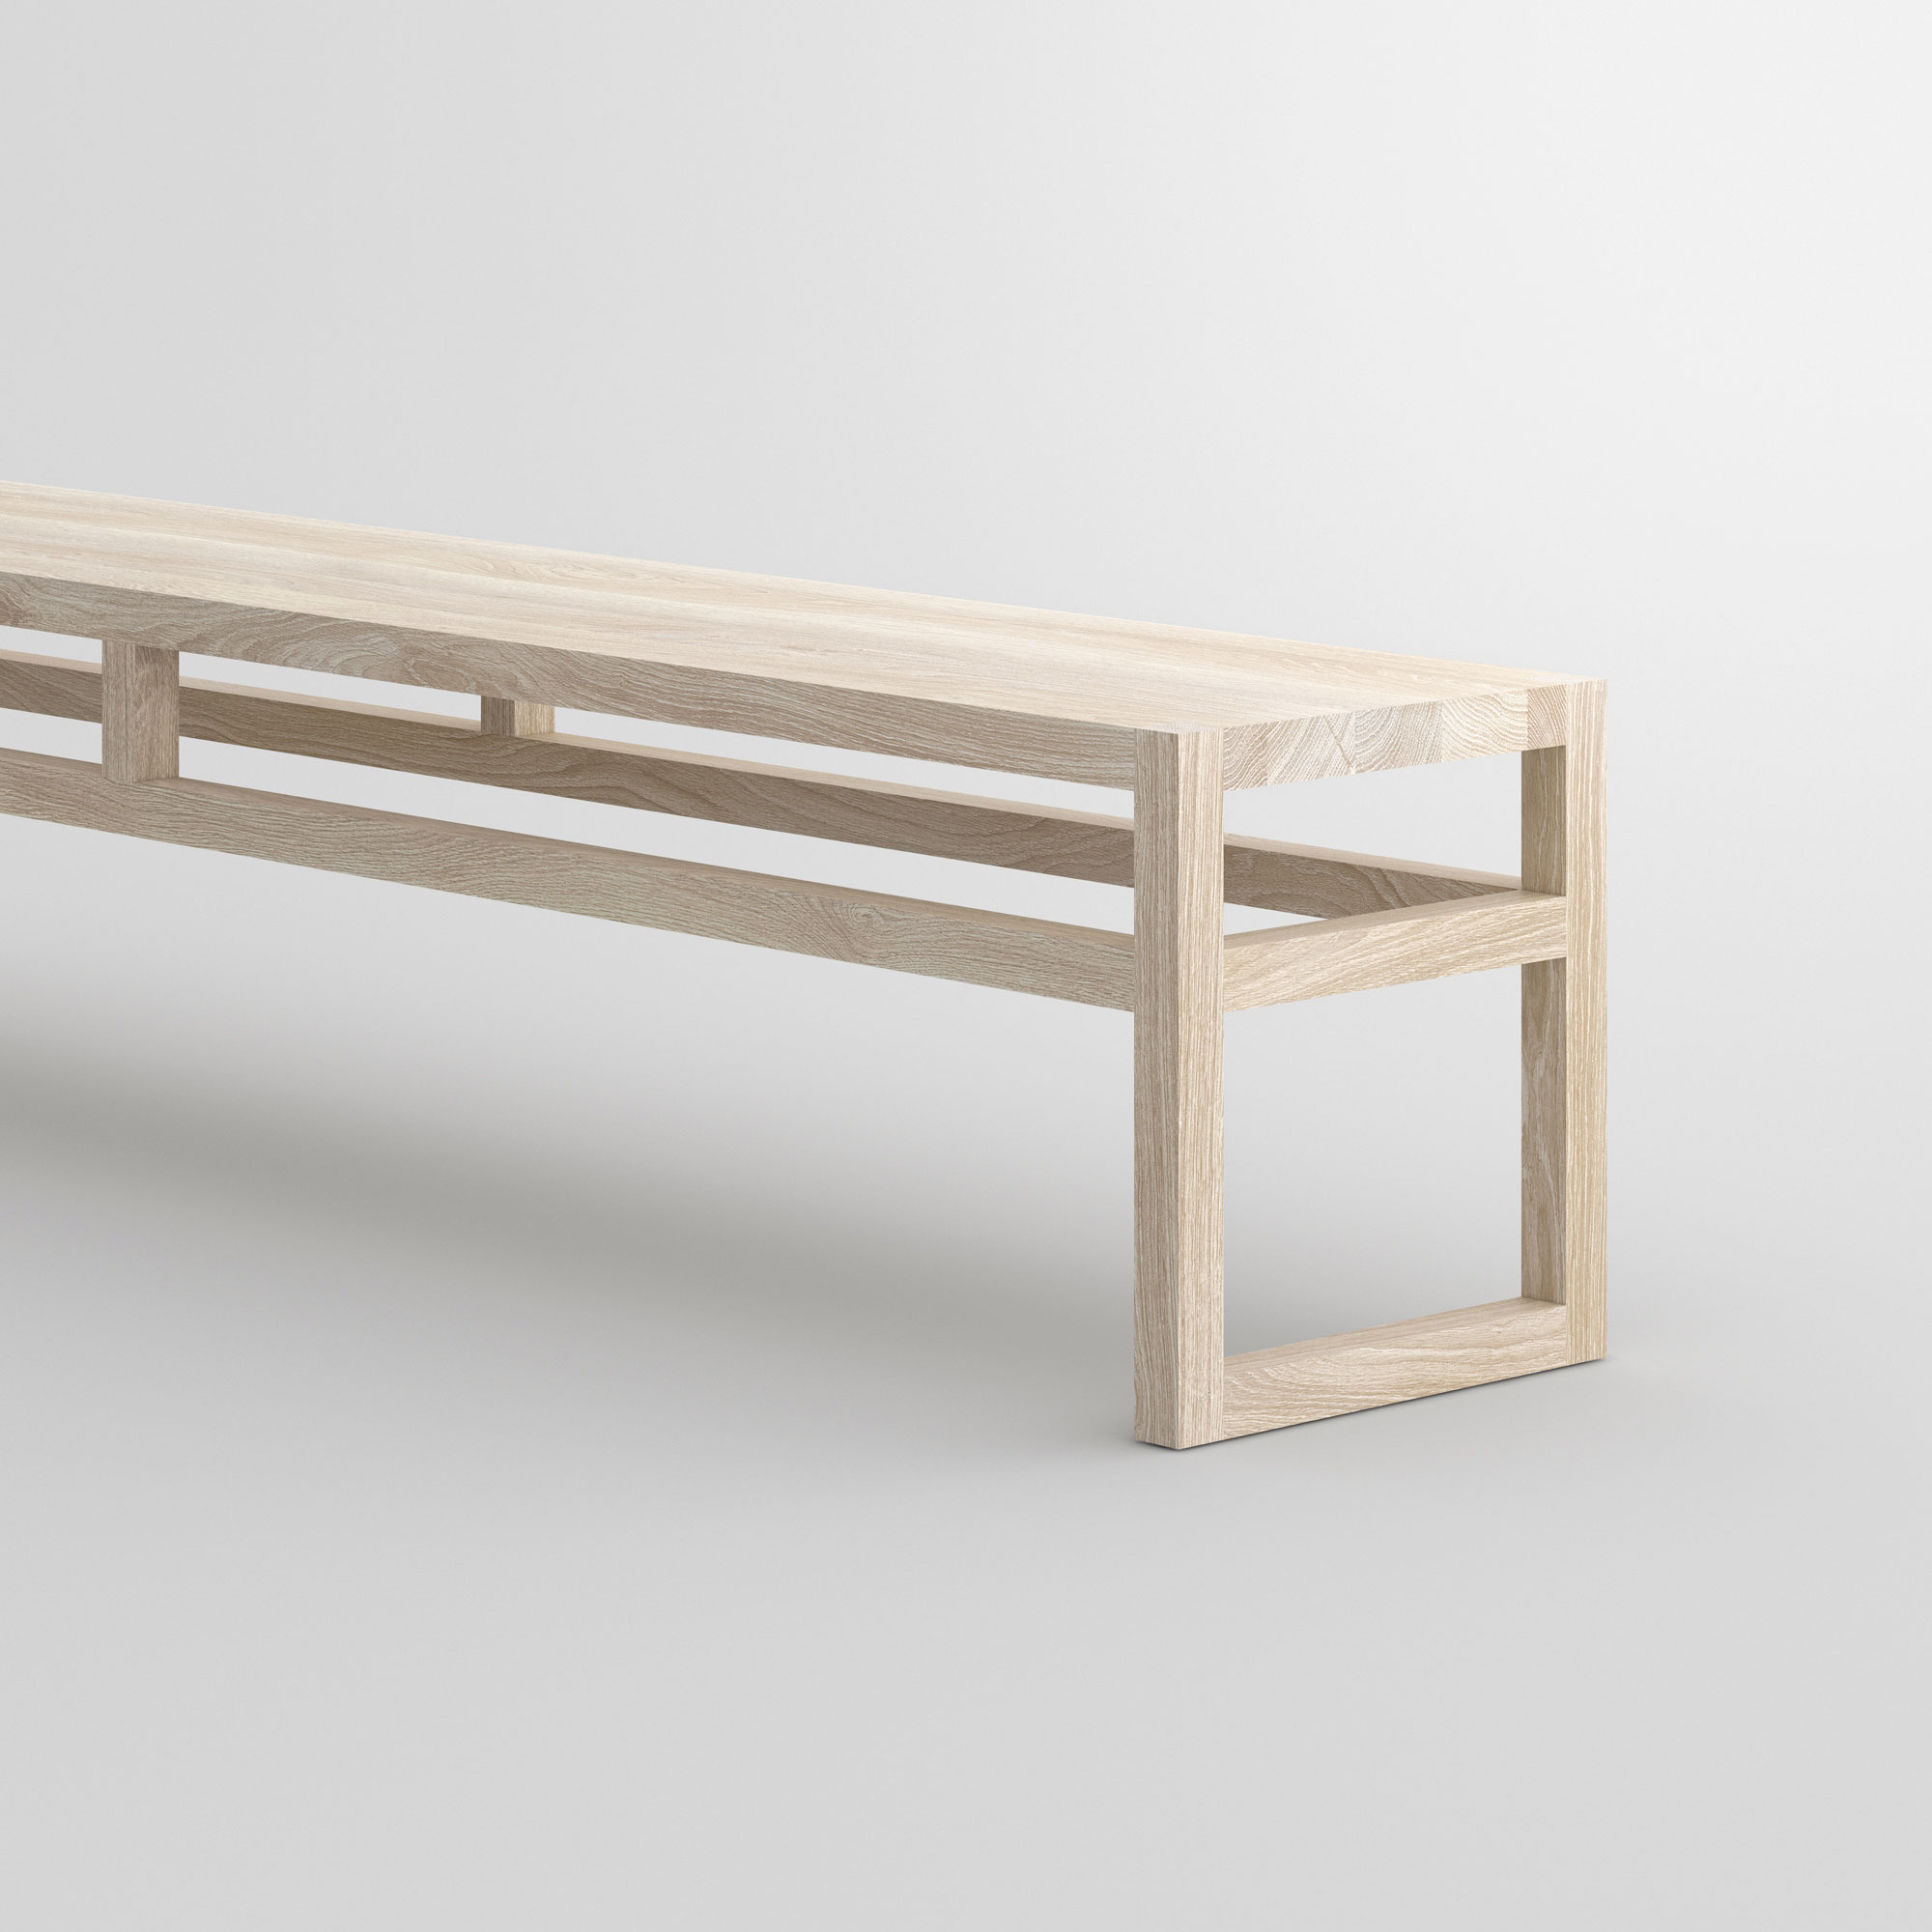 Dining Room Wood Bench SENA cam2 custom made in solid wood by vitamin design